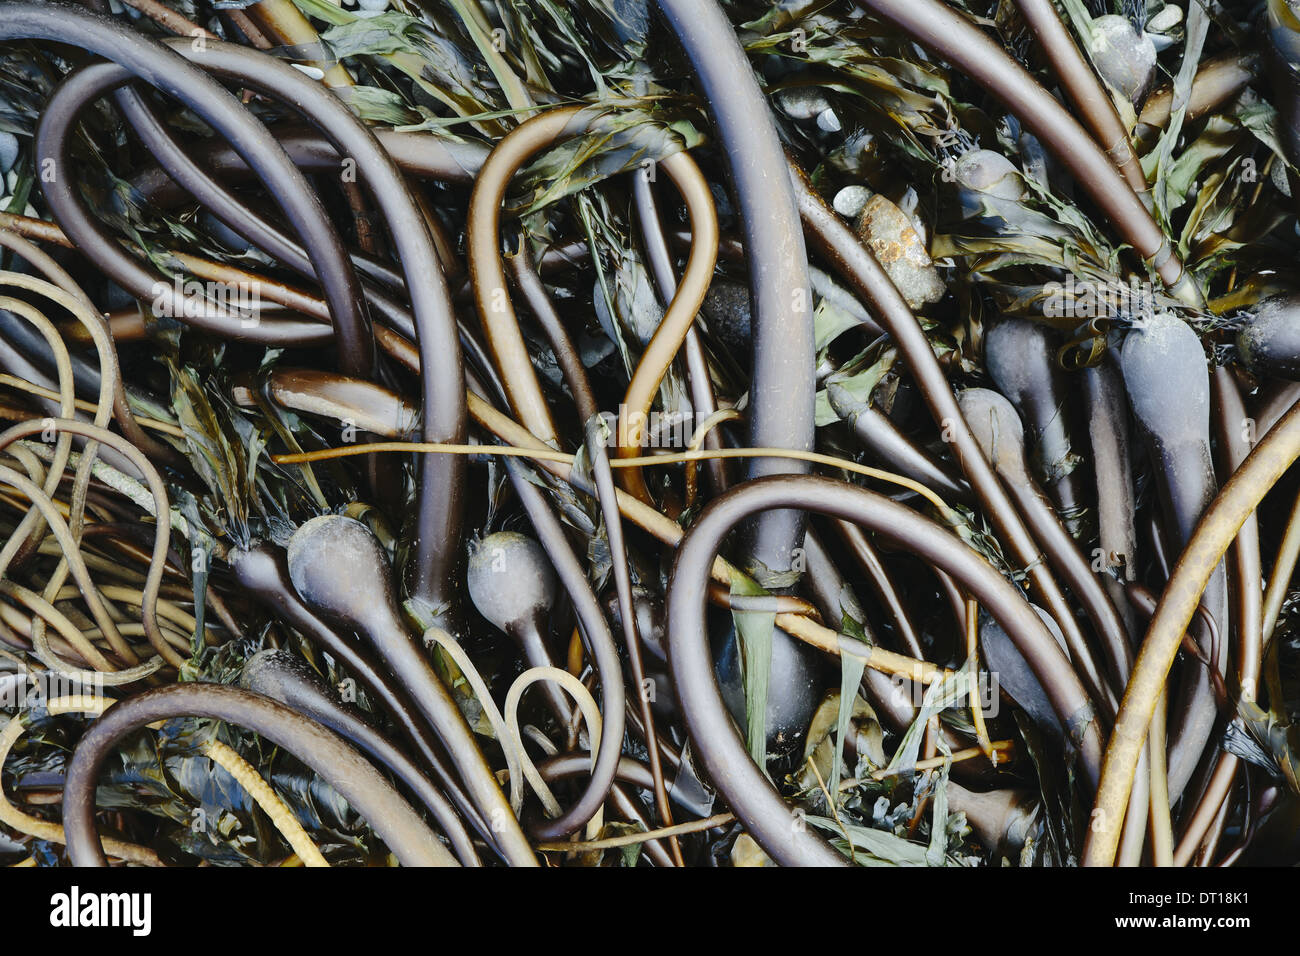 Rialto Beach Olympic National Park Washington USA. Pile of Bull Kelp seaweed washed up on beach - Stock Image